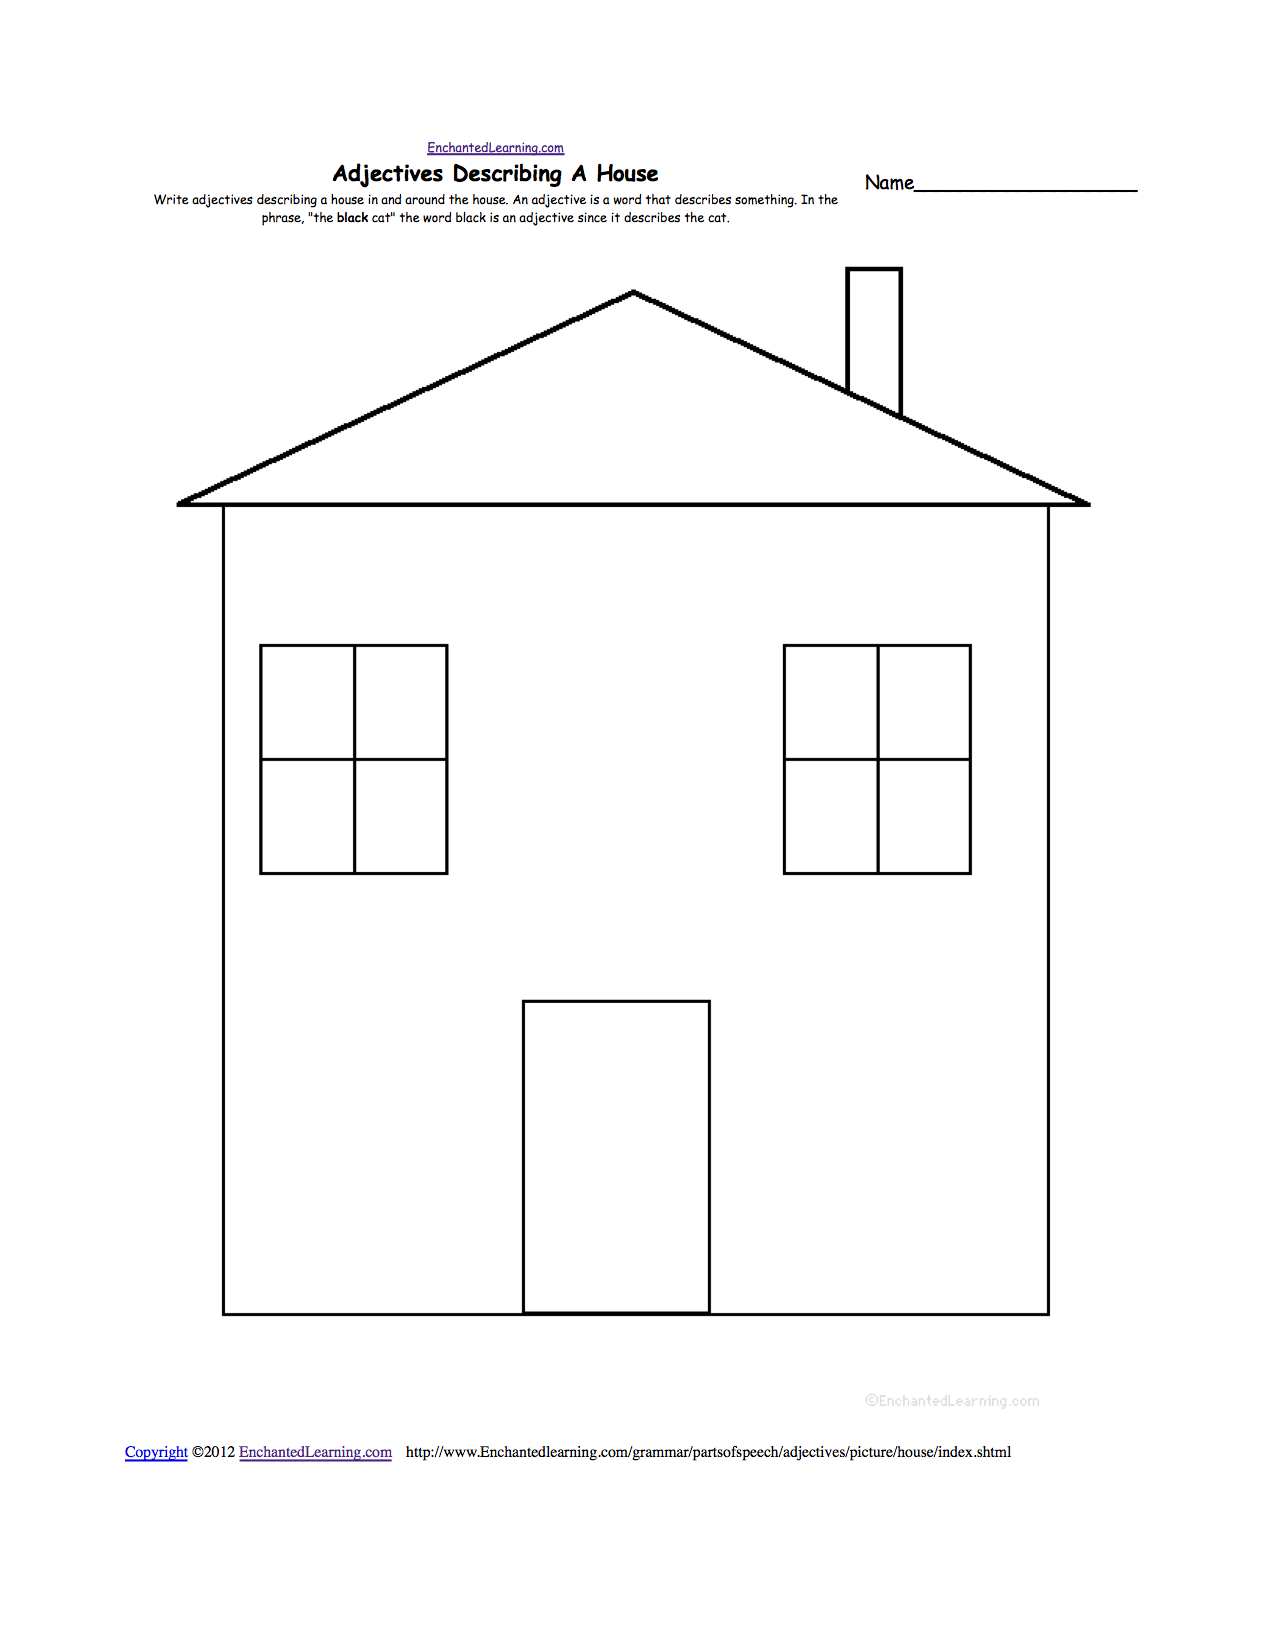 parts of the house worksheets for kindergarten_23352